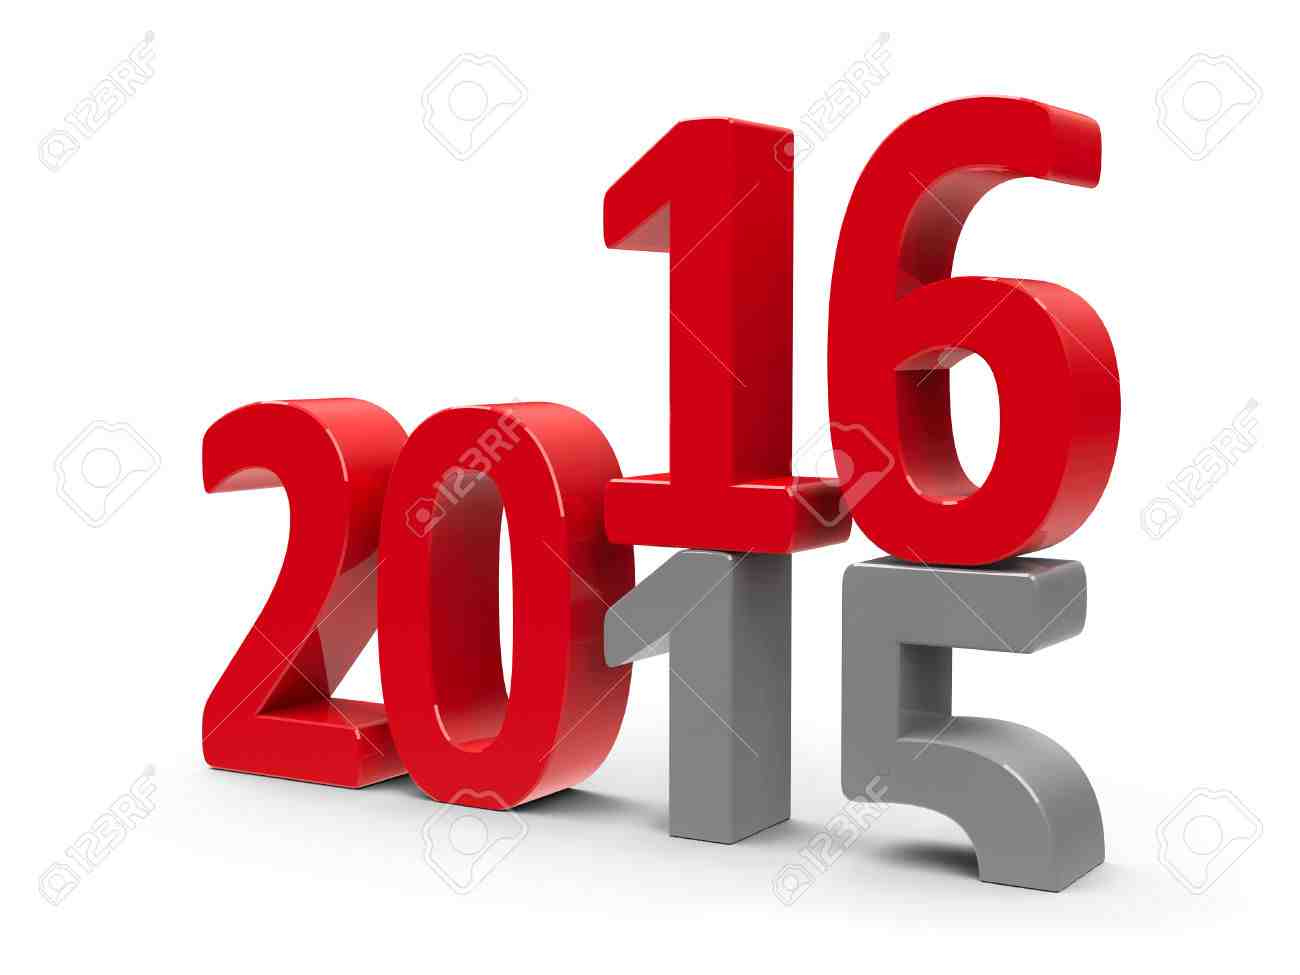 http://www.acrosnews.com/wp-content/uploads/2015/12/36572324-2015-2016-change-represents-the-new-year-2016-three-dimensional-rendering-Stock-Photo.jpg